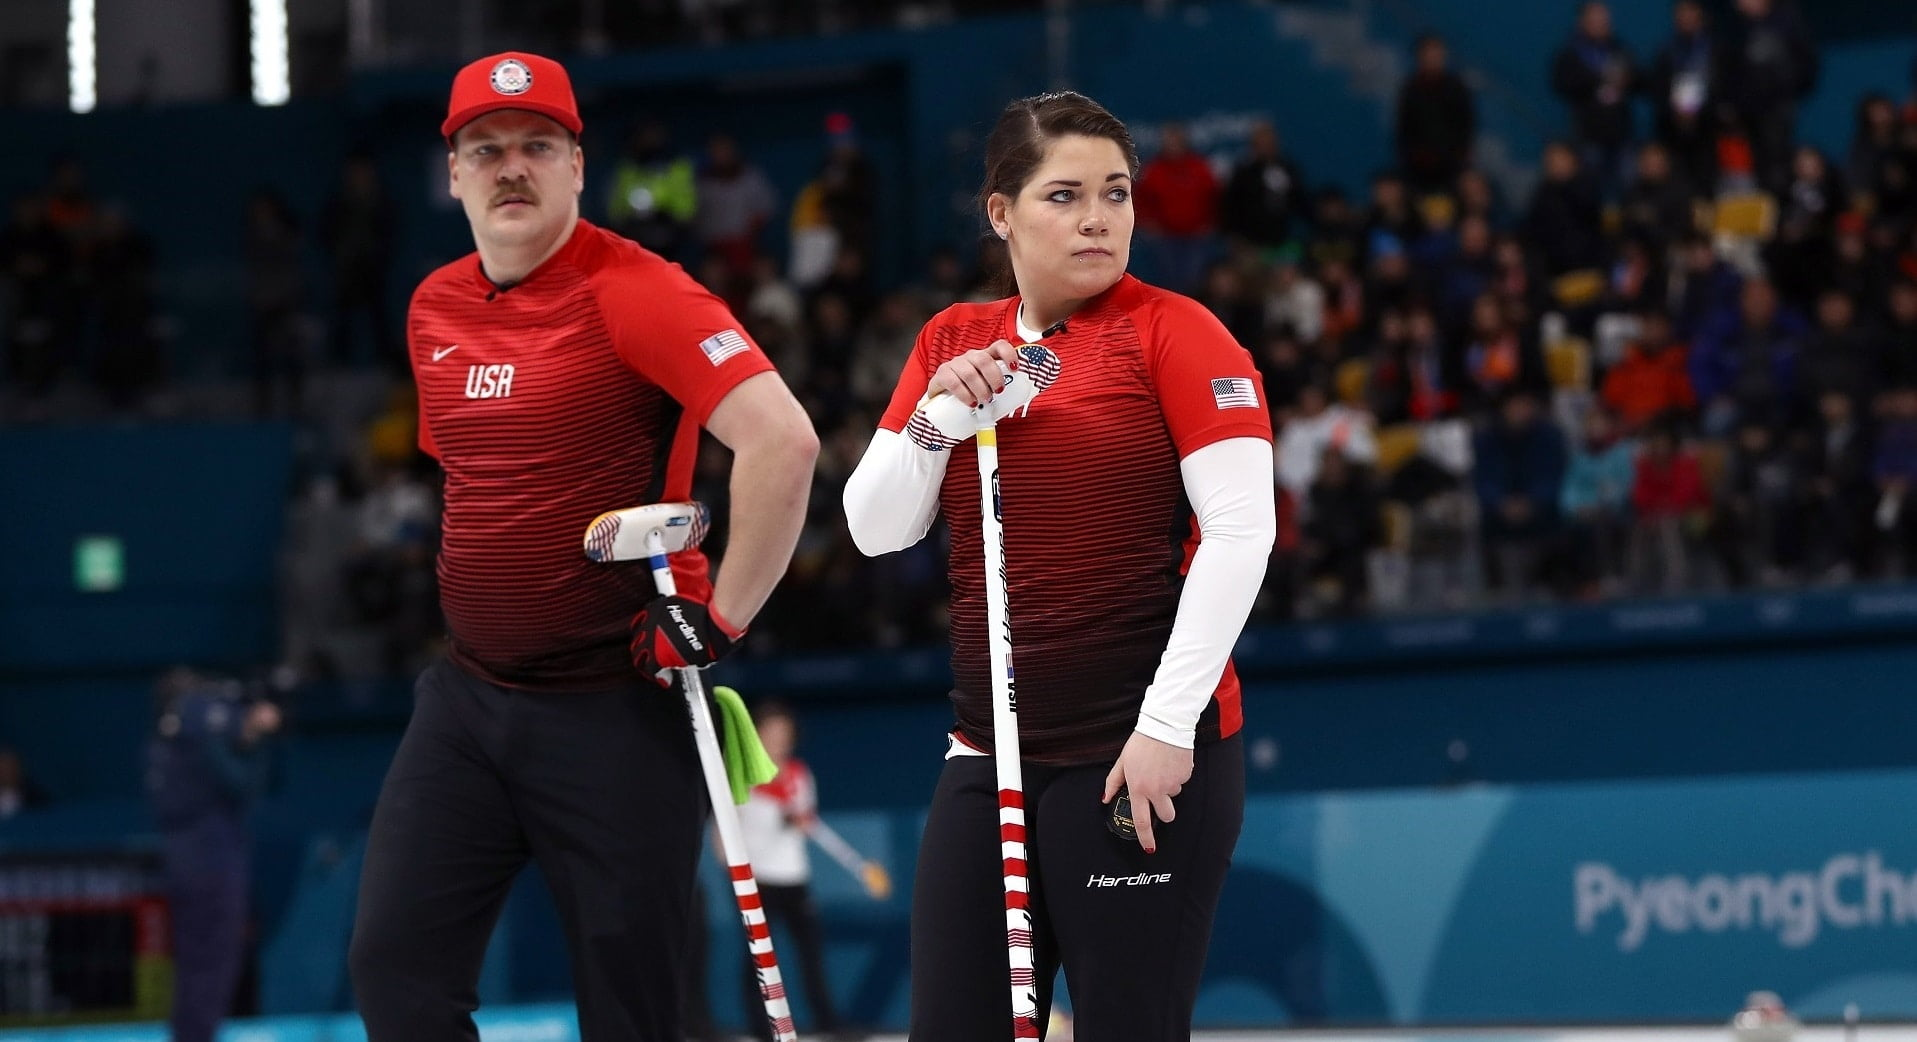 curling and team Ivanka trump cheered on american men's curling team as they snagged a historic first ever olympic gold medal against sweden saturday.